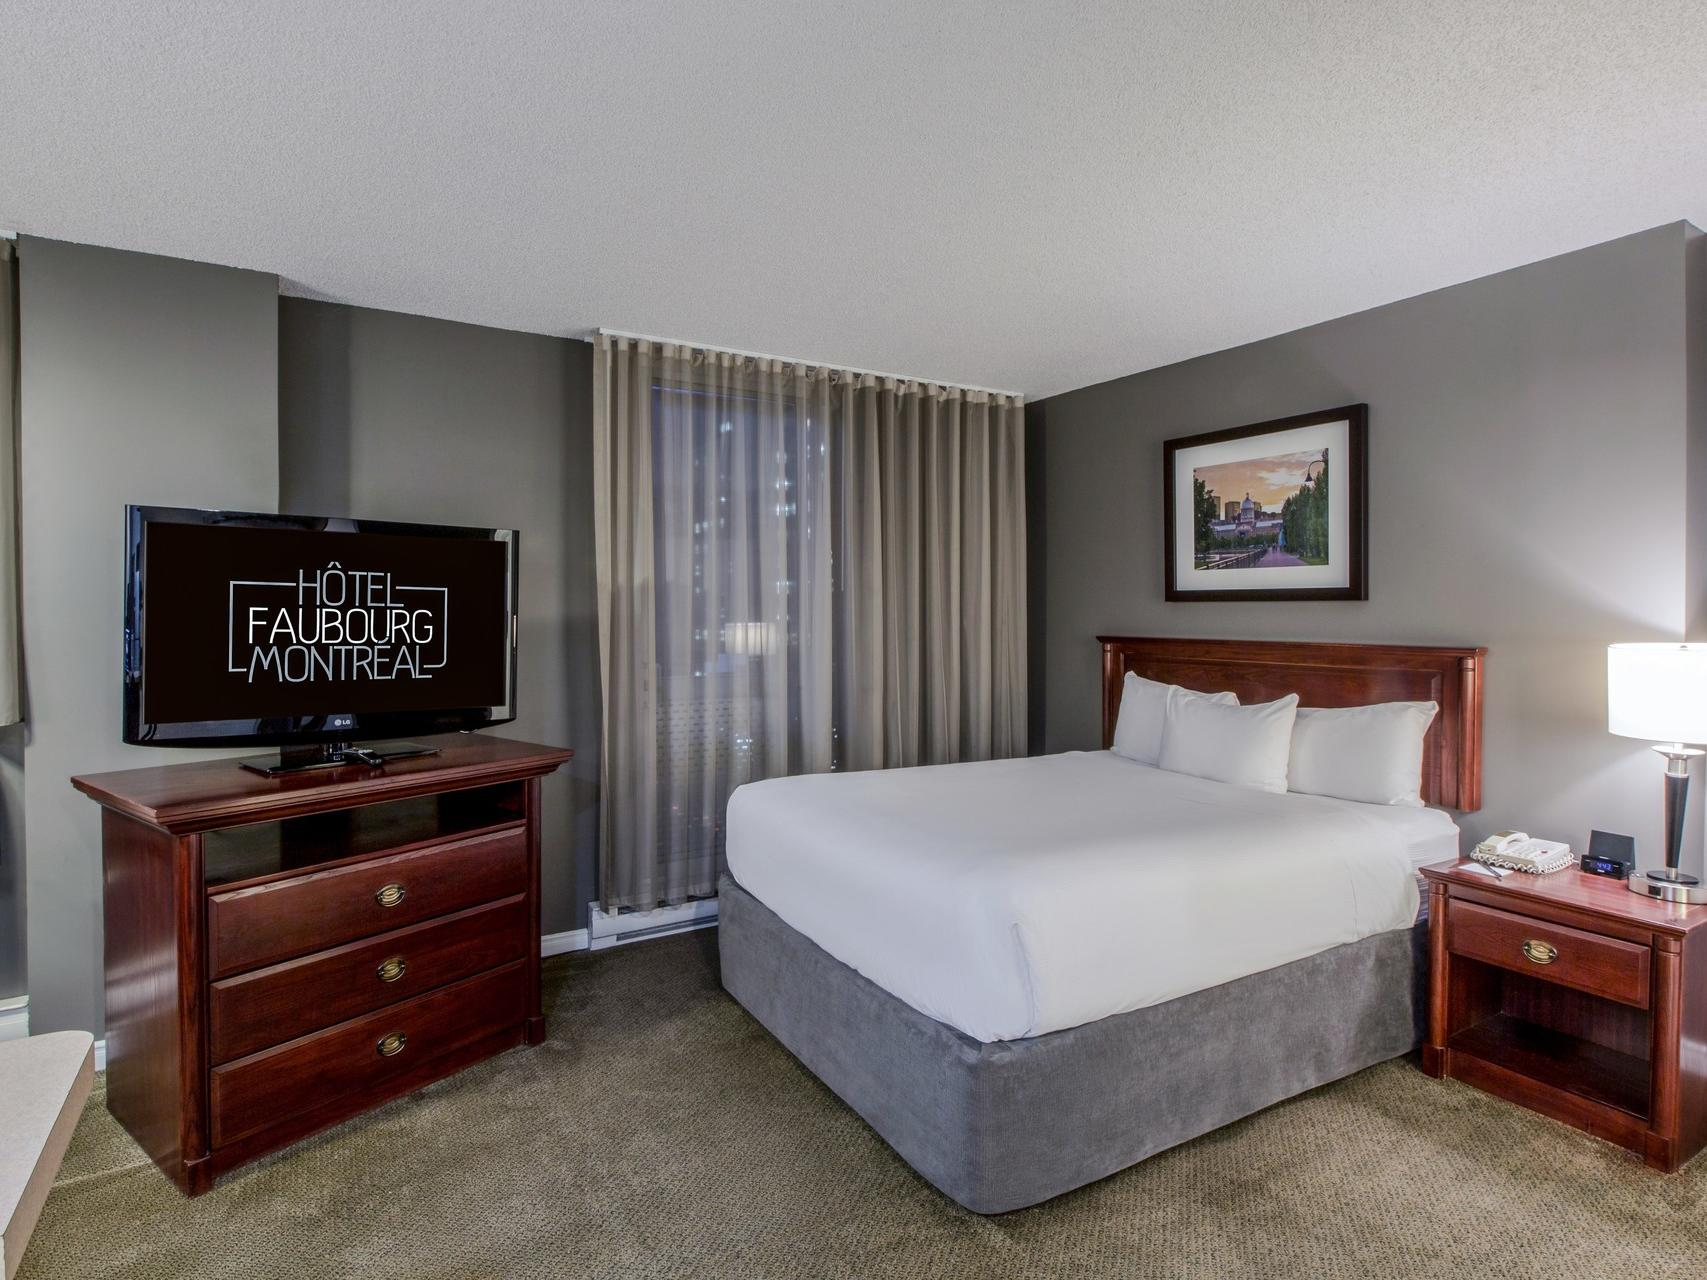 Studio One Queen Bed at Hotel Faubourg Montreal